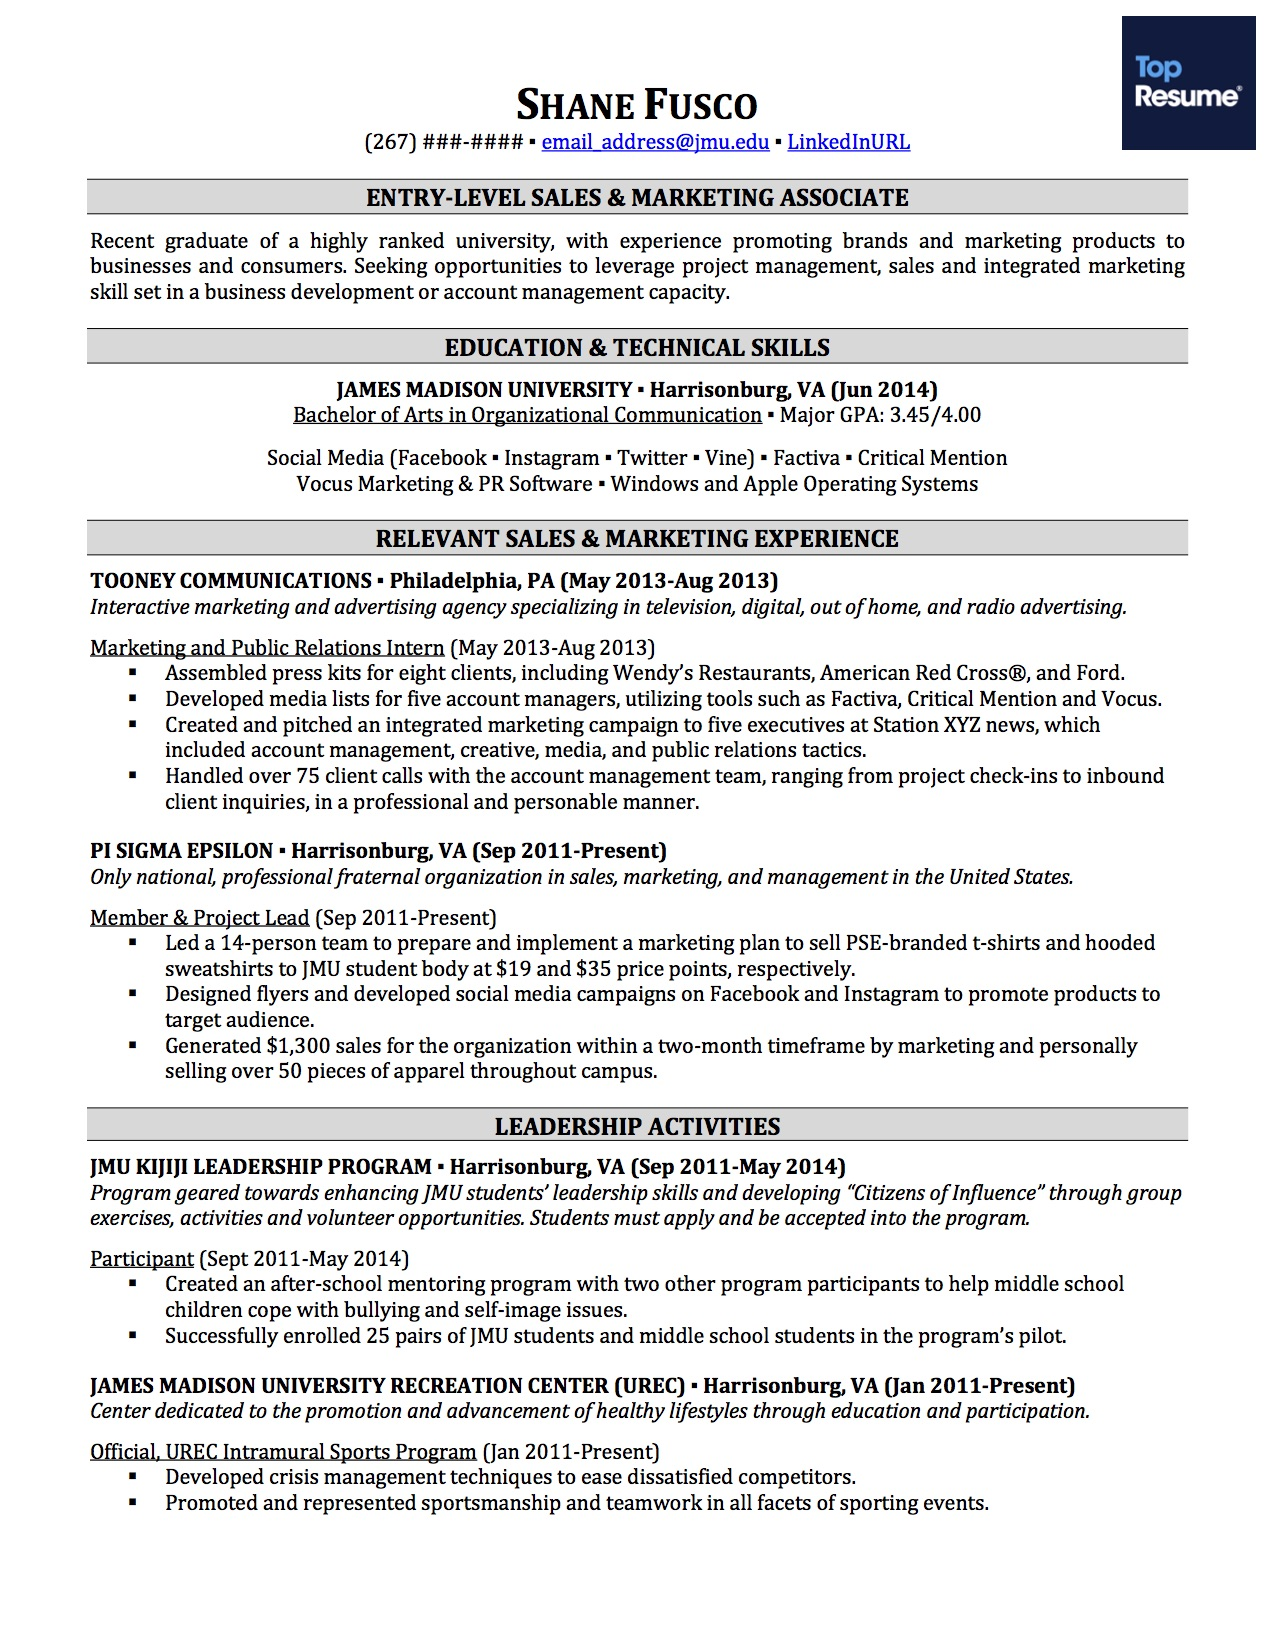 Resume Template For No Job Experience How To Write A Resume With No Job Experience Topresume